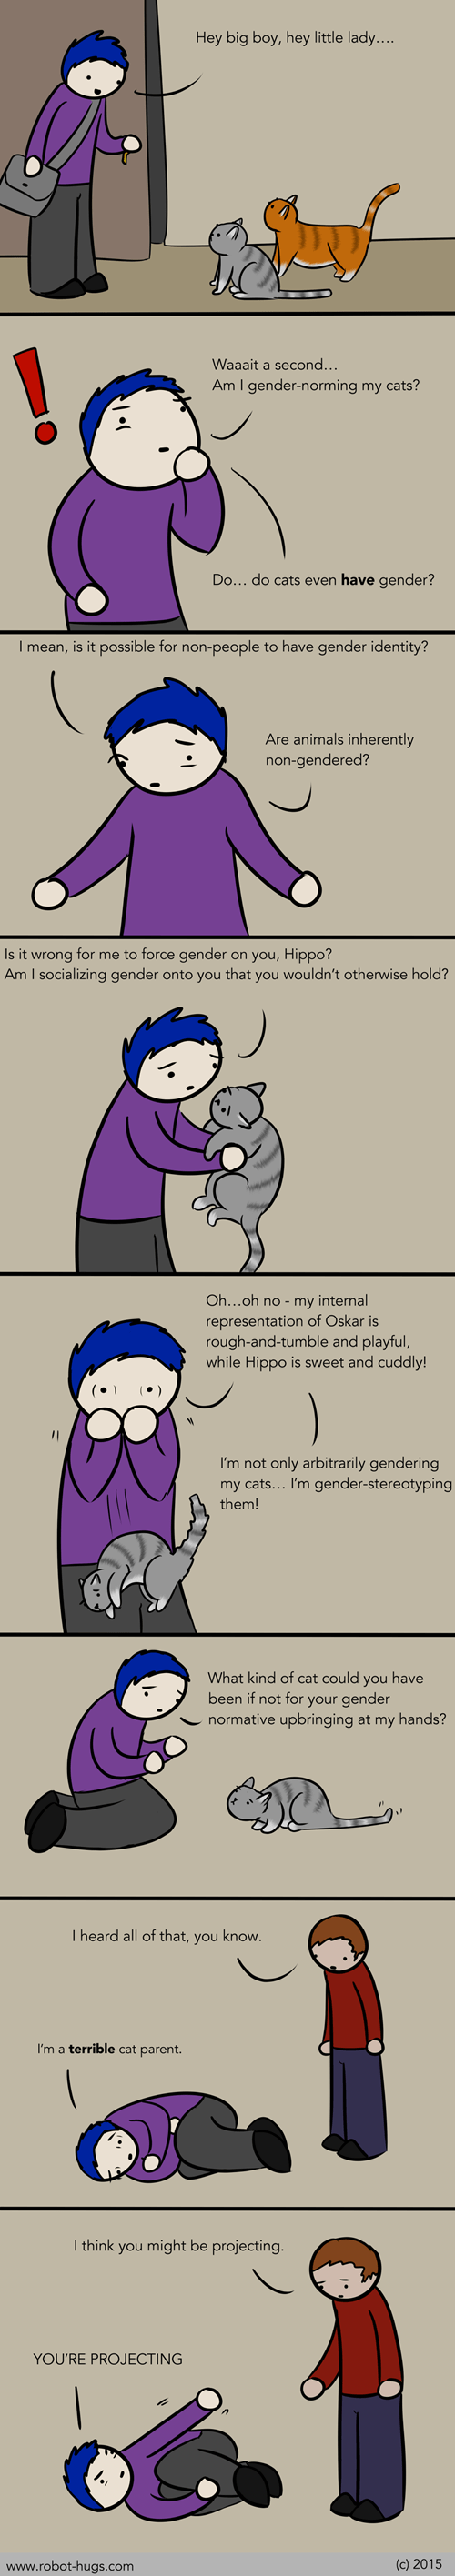 gender pets parenting web comics false binaries